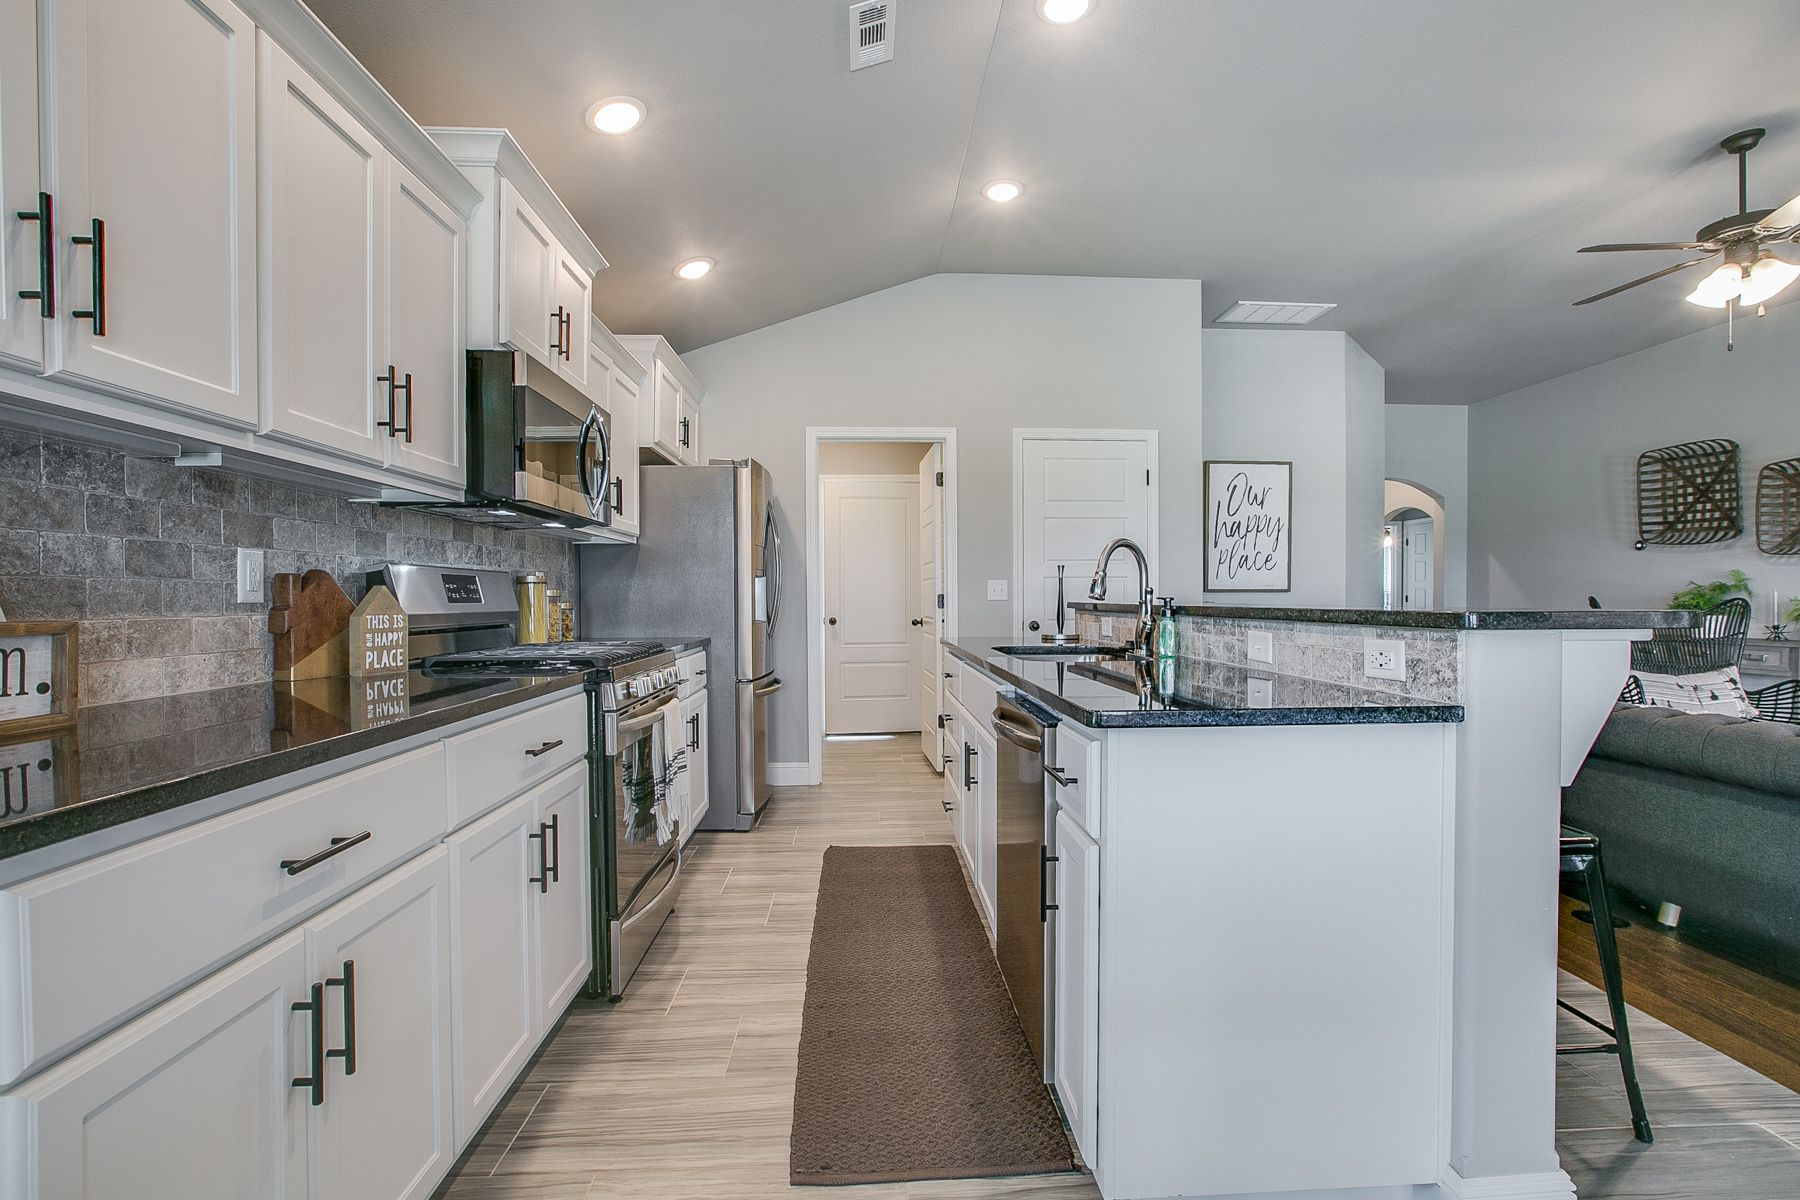 Kitchen featured in the 1700KI Series By Schuber Mitchell Homes in Fayetteville, AR